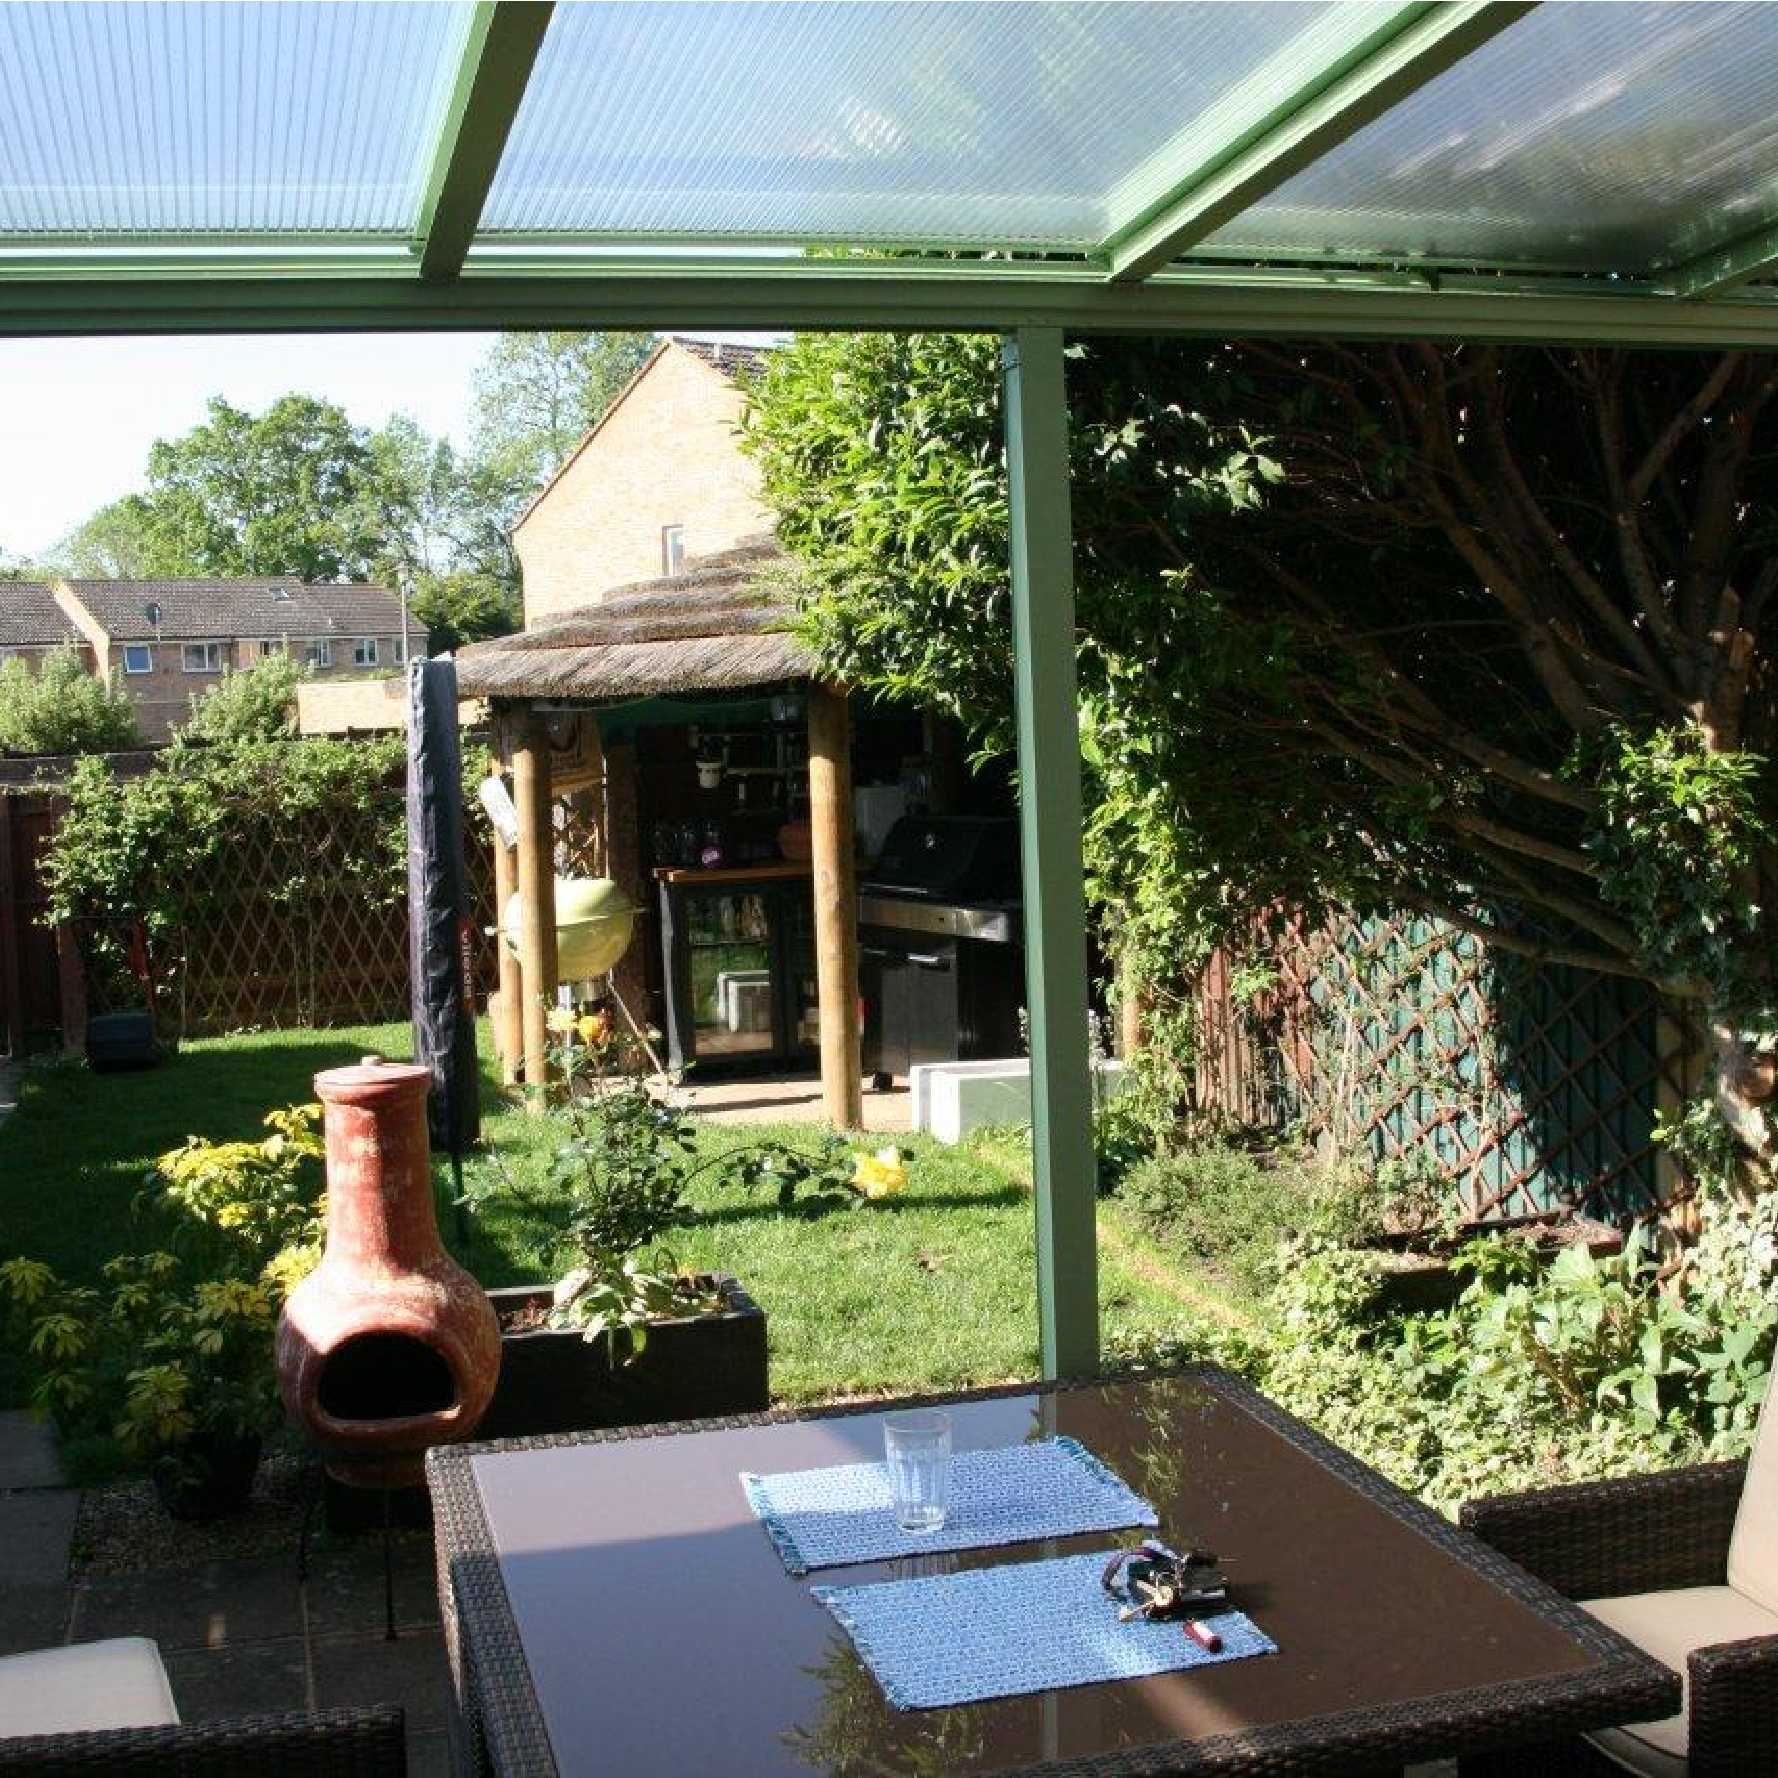 Affordable Omega Smart Lean-To Canopy with 16mm Polycarbonate Glazing - 9.5m (W) x 2.5m (P), (5) Supporting Posts